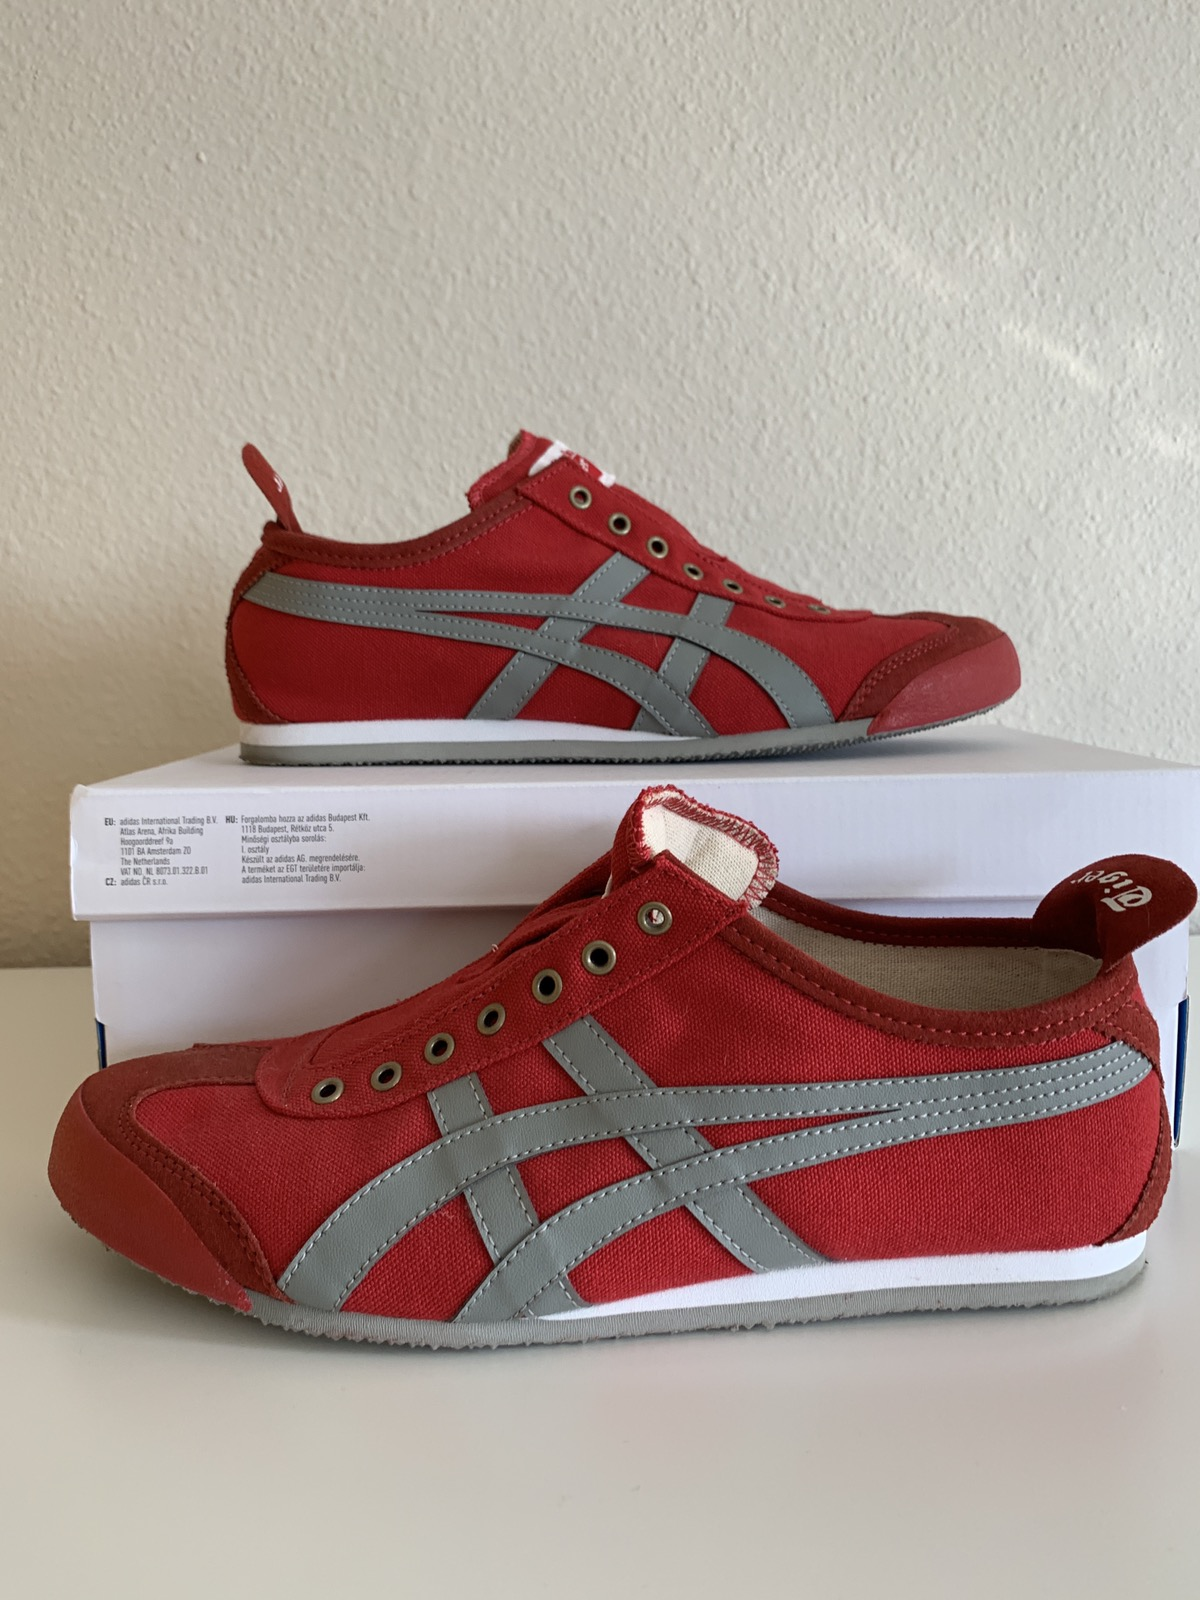 official photos 034f9 7a8eb Onitsuka Tiger red with grey stripes sneakers